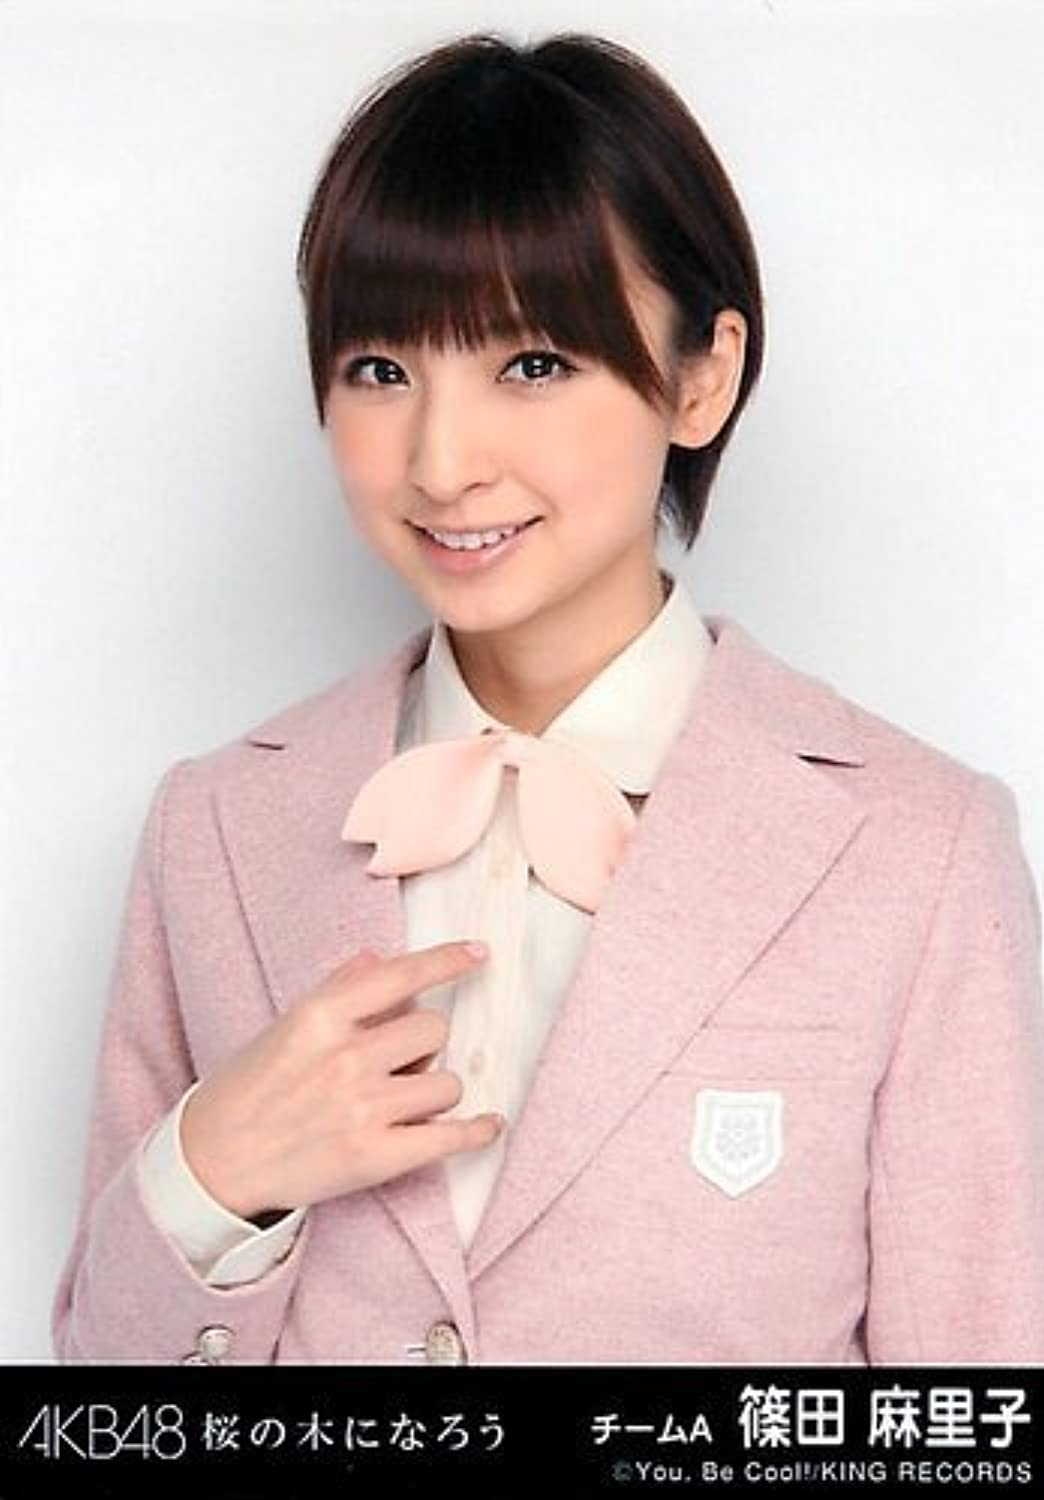 Ver. [Shinoda Mariko] that will become a tree of theater board cherry would AKB48 official tree of life photograph Sakura (japan import)